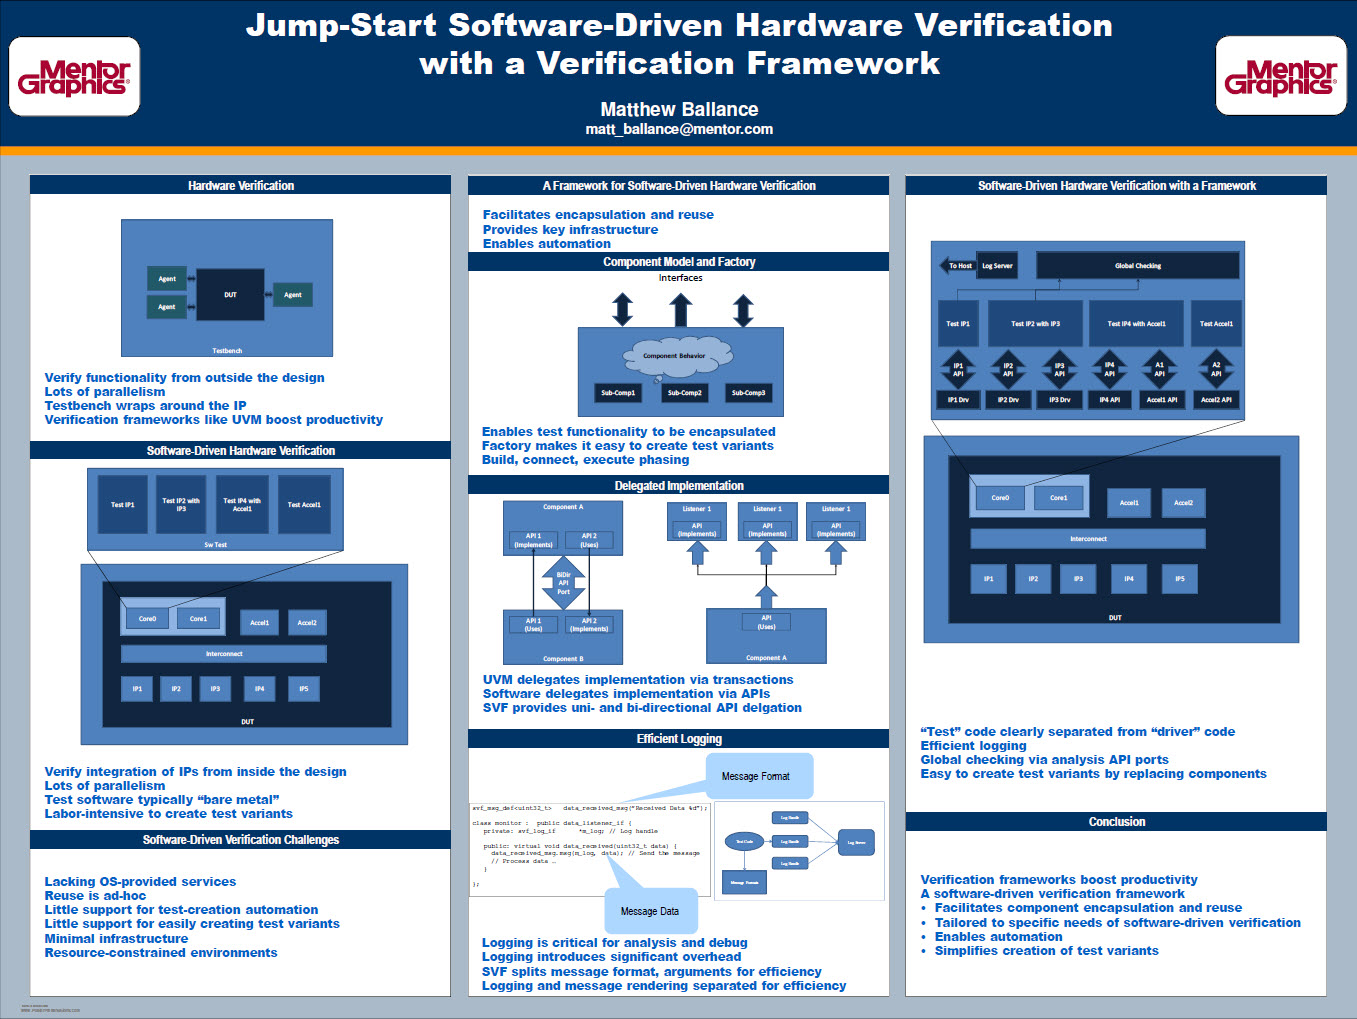 Featured Papers & Posters from DVCon 2015 | Verification ...